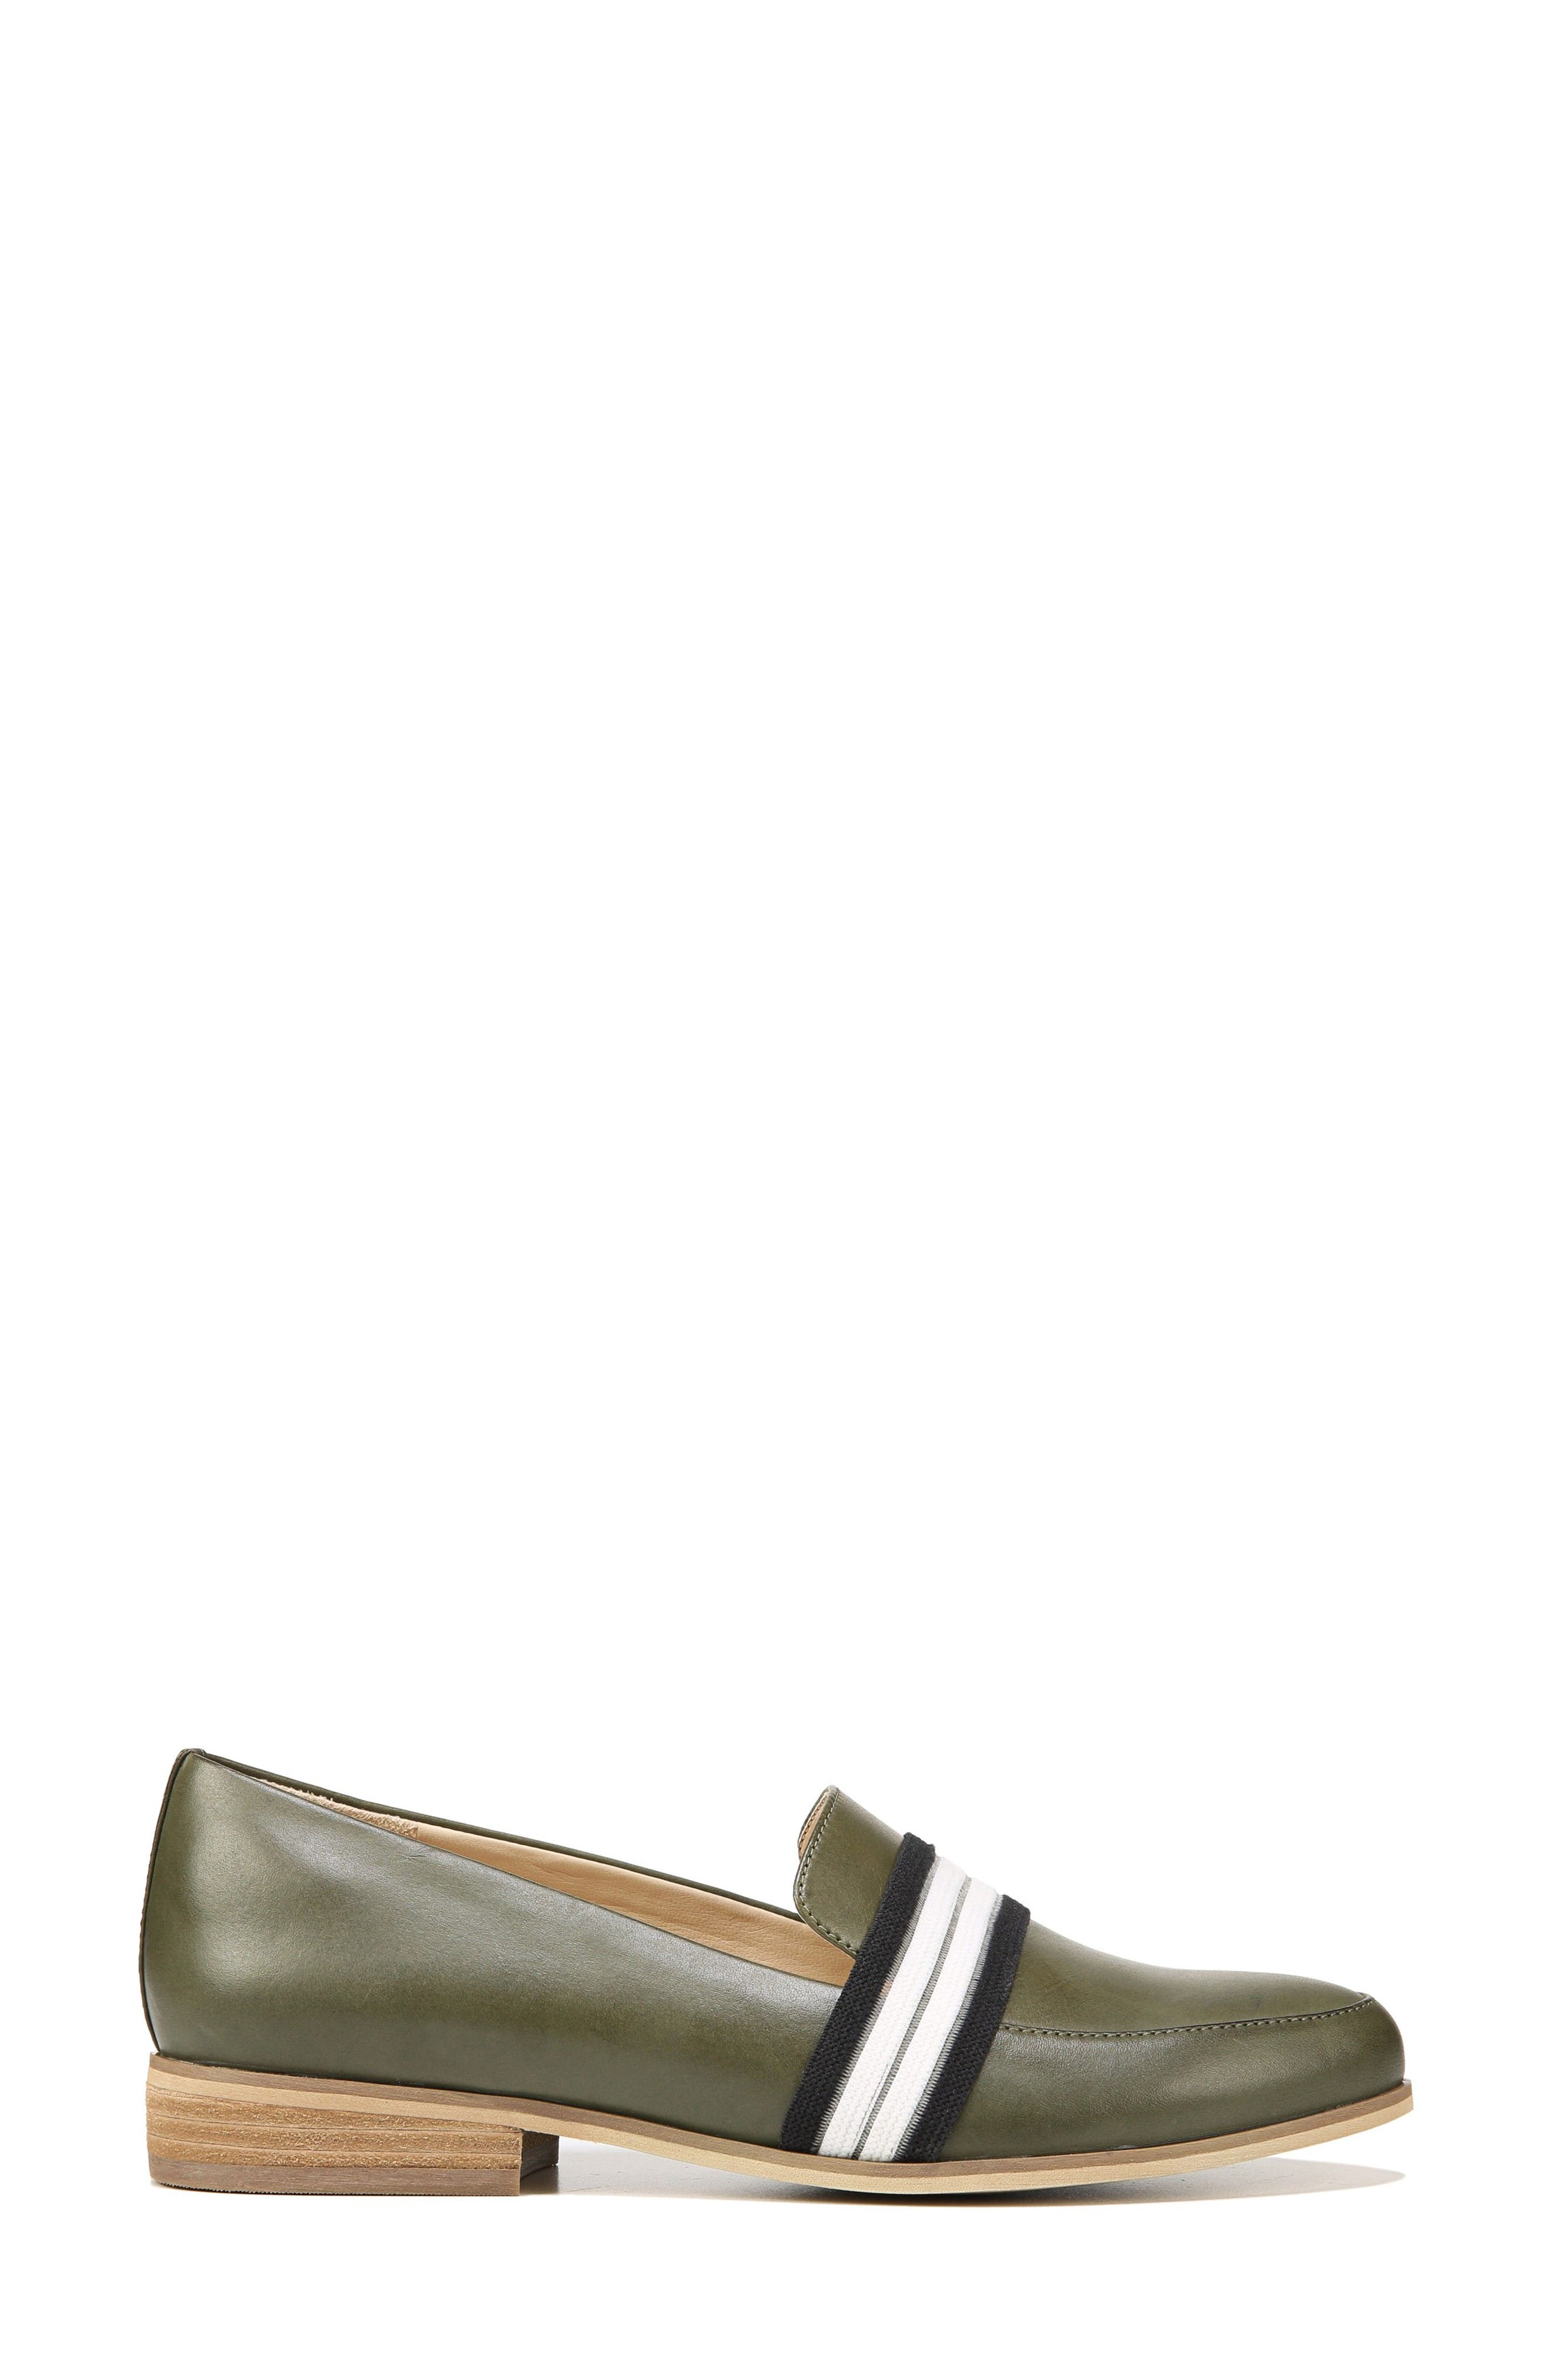 Everett Band Loafer,                             Alternate thumbnail 3, color,                             Green Leather